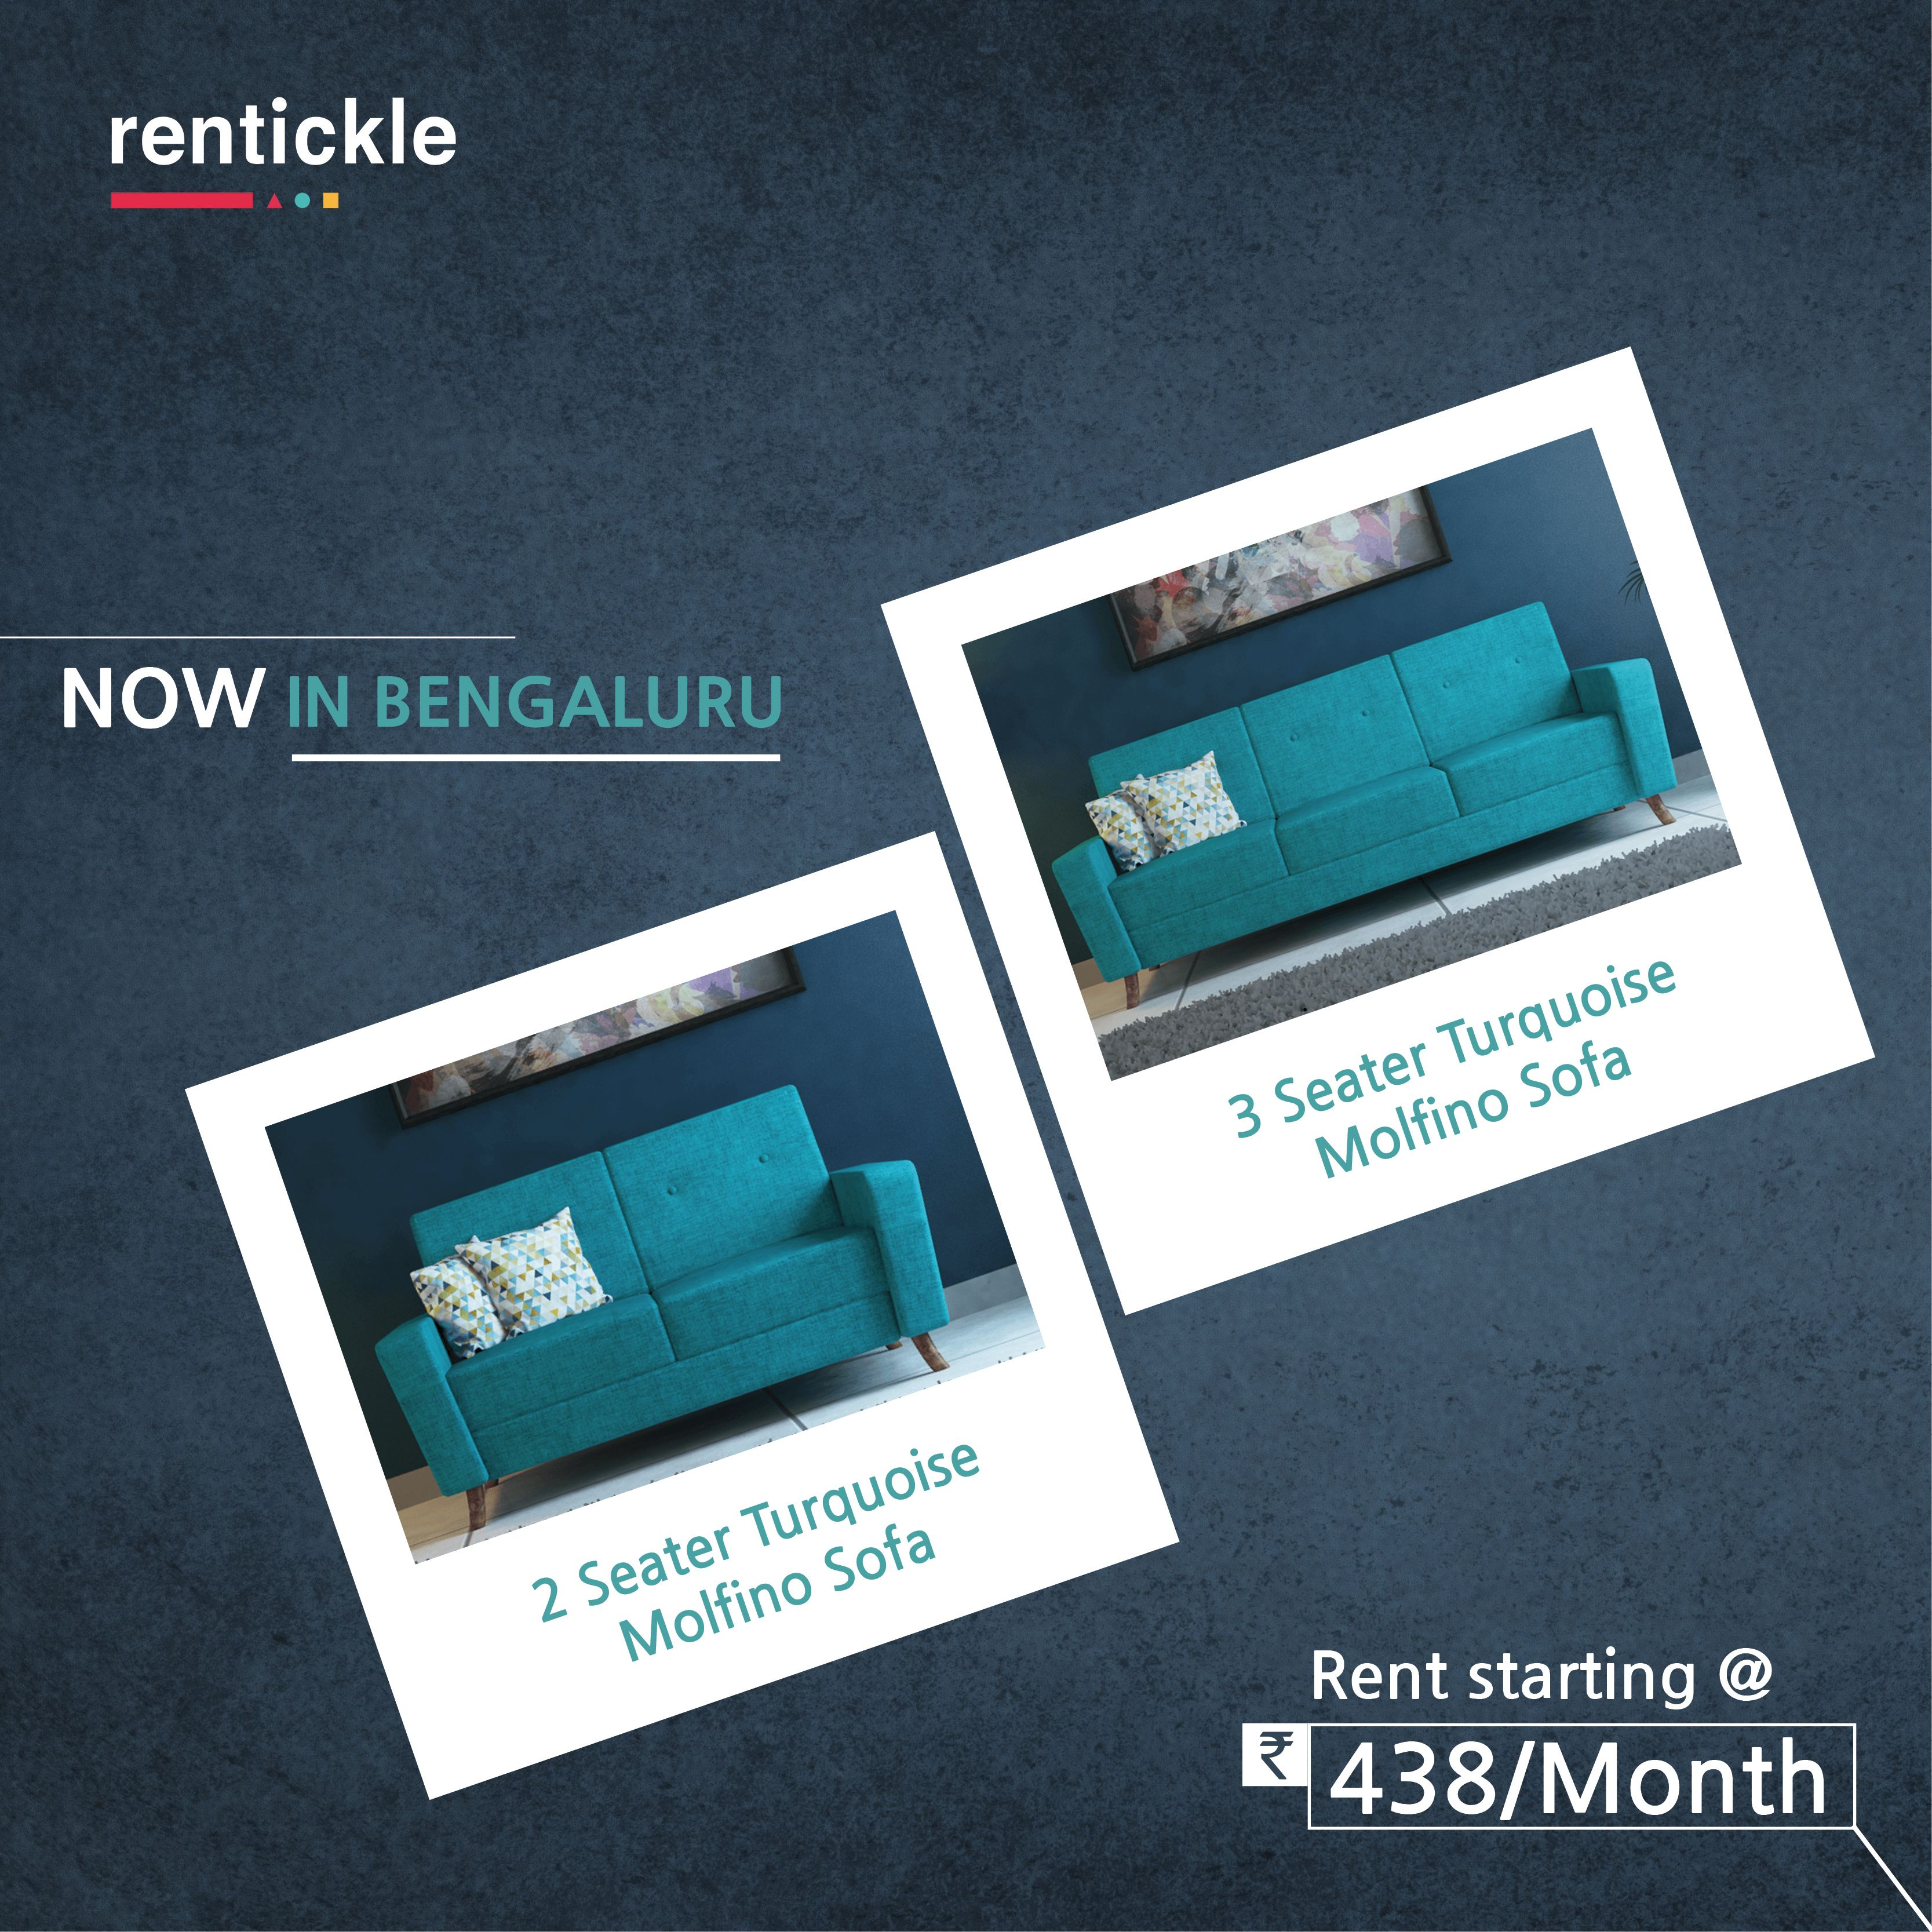 Smallspace Living: Rent The Trendy 2 & 3 Seater Turquoise Molfino Sofas, Now